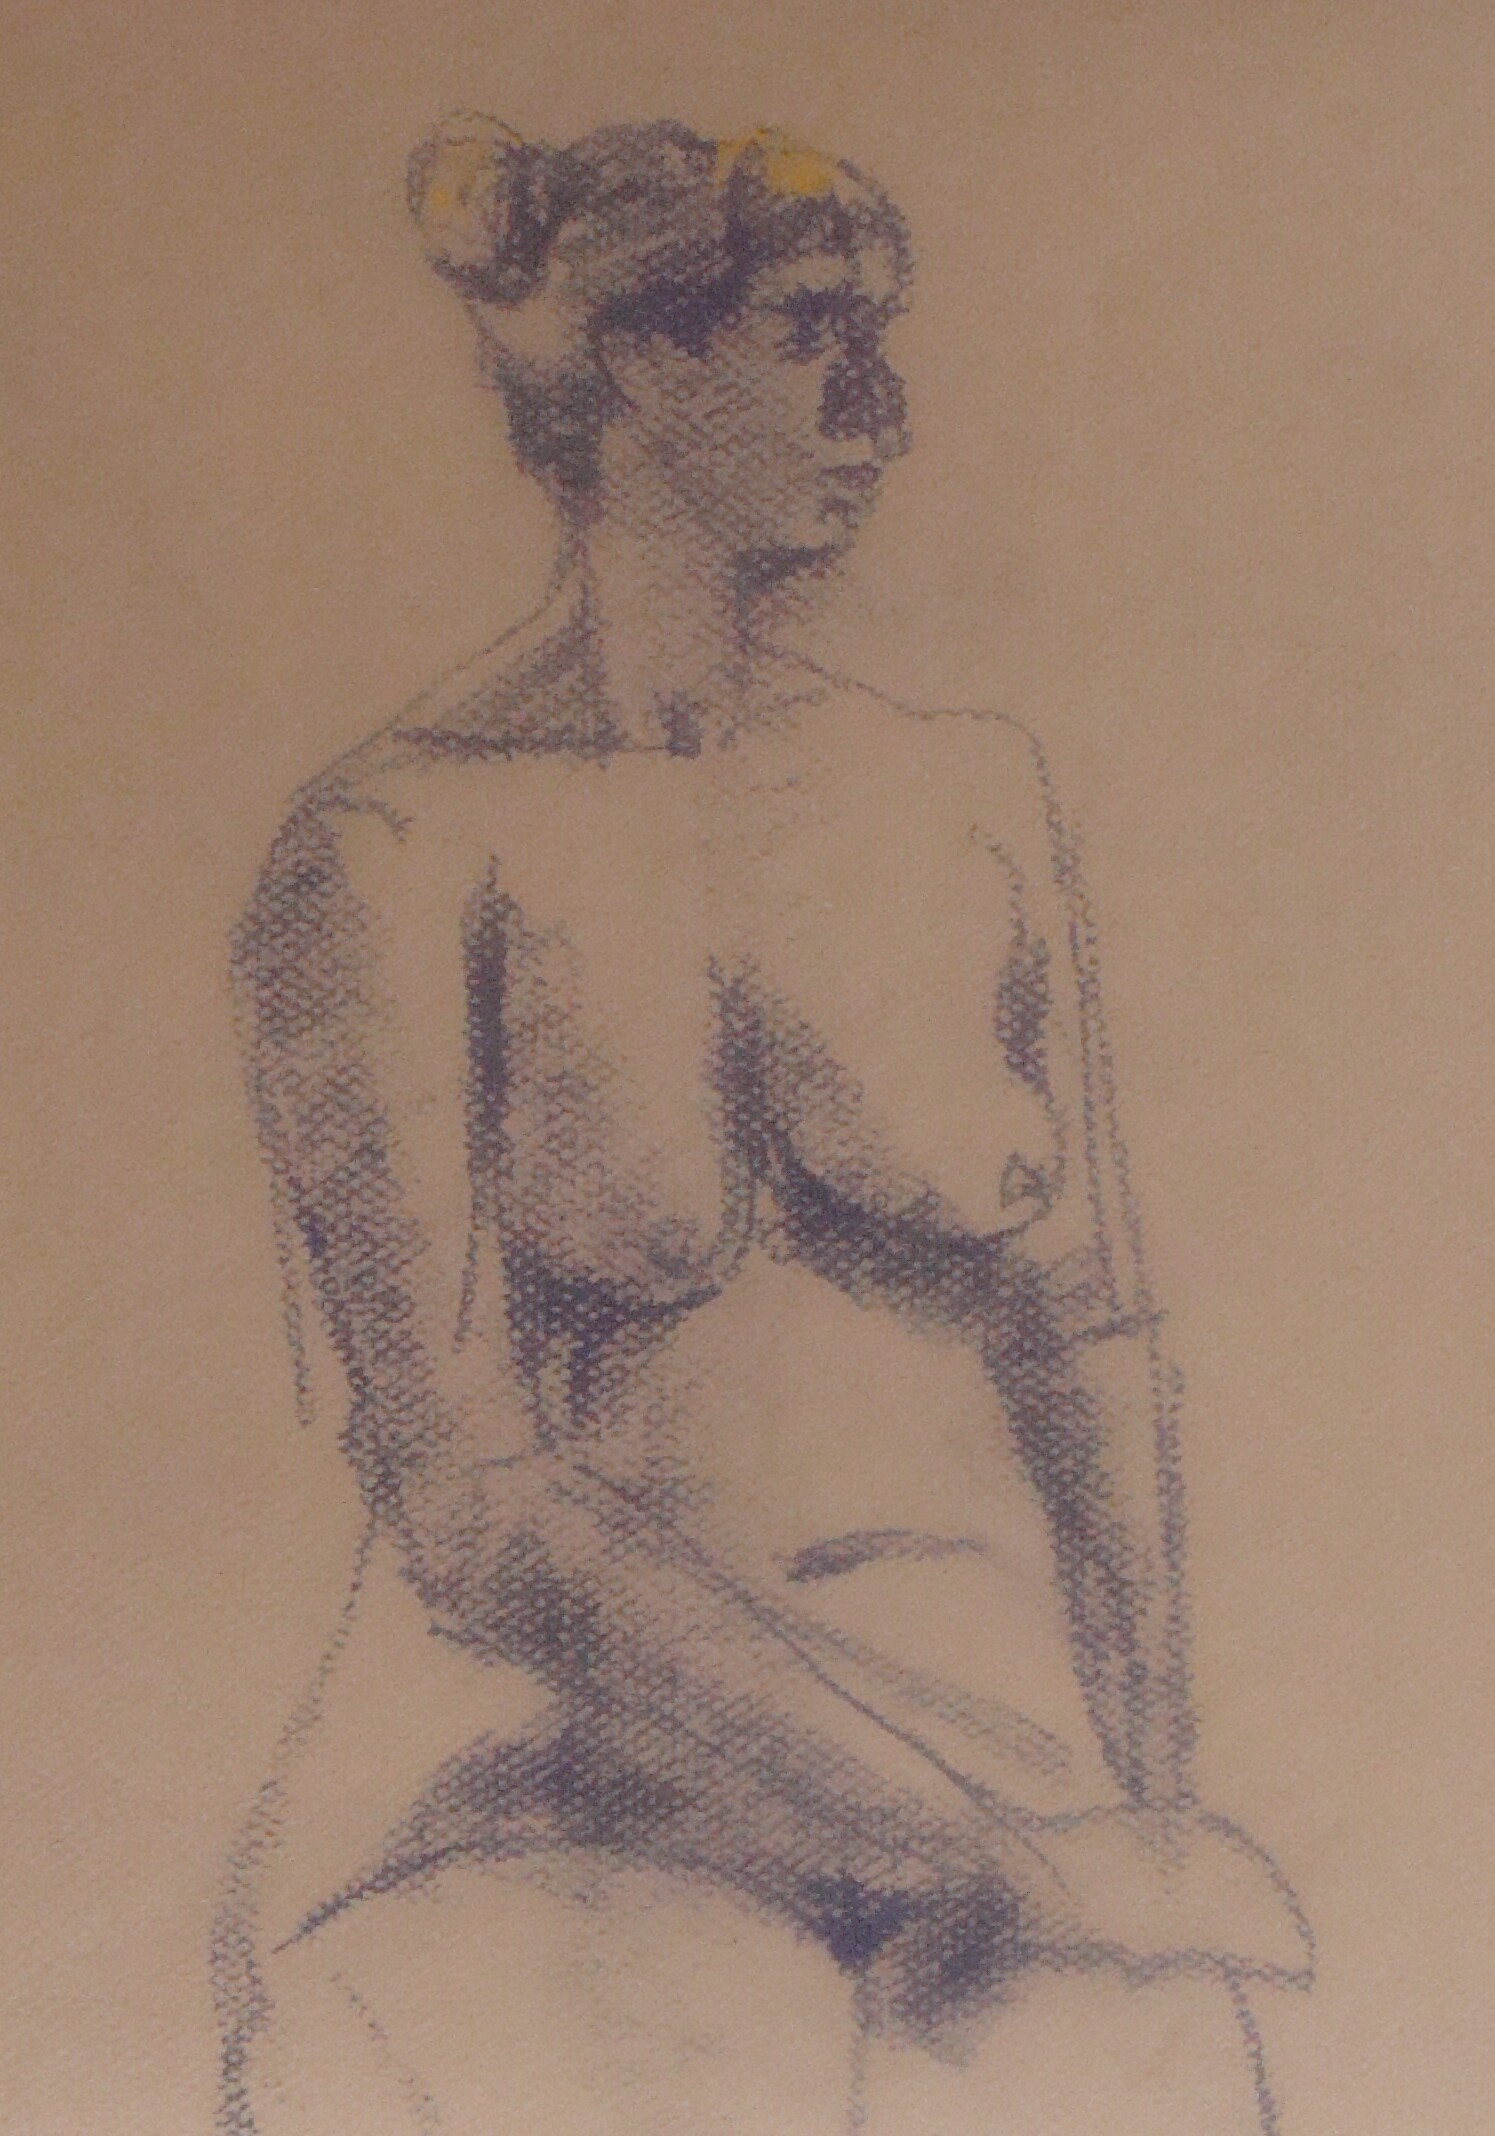 Ls- nude :1 7 Pastel on Canson colored papers and white drawing paper, 28 March 2012. 9-12 minute sketches: